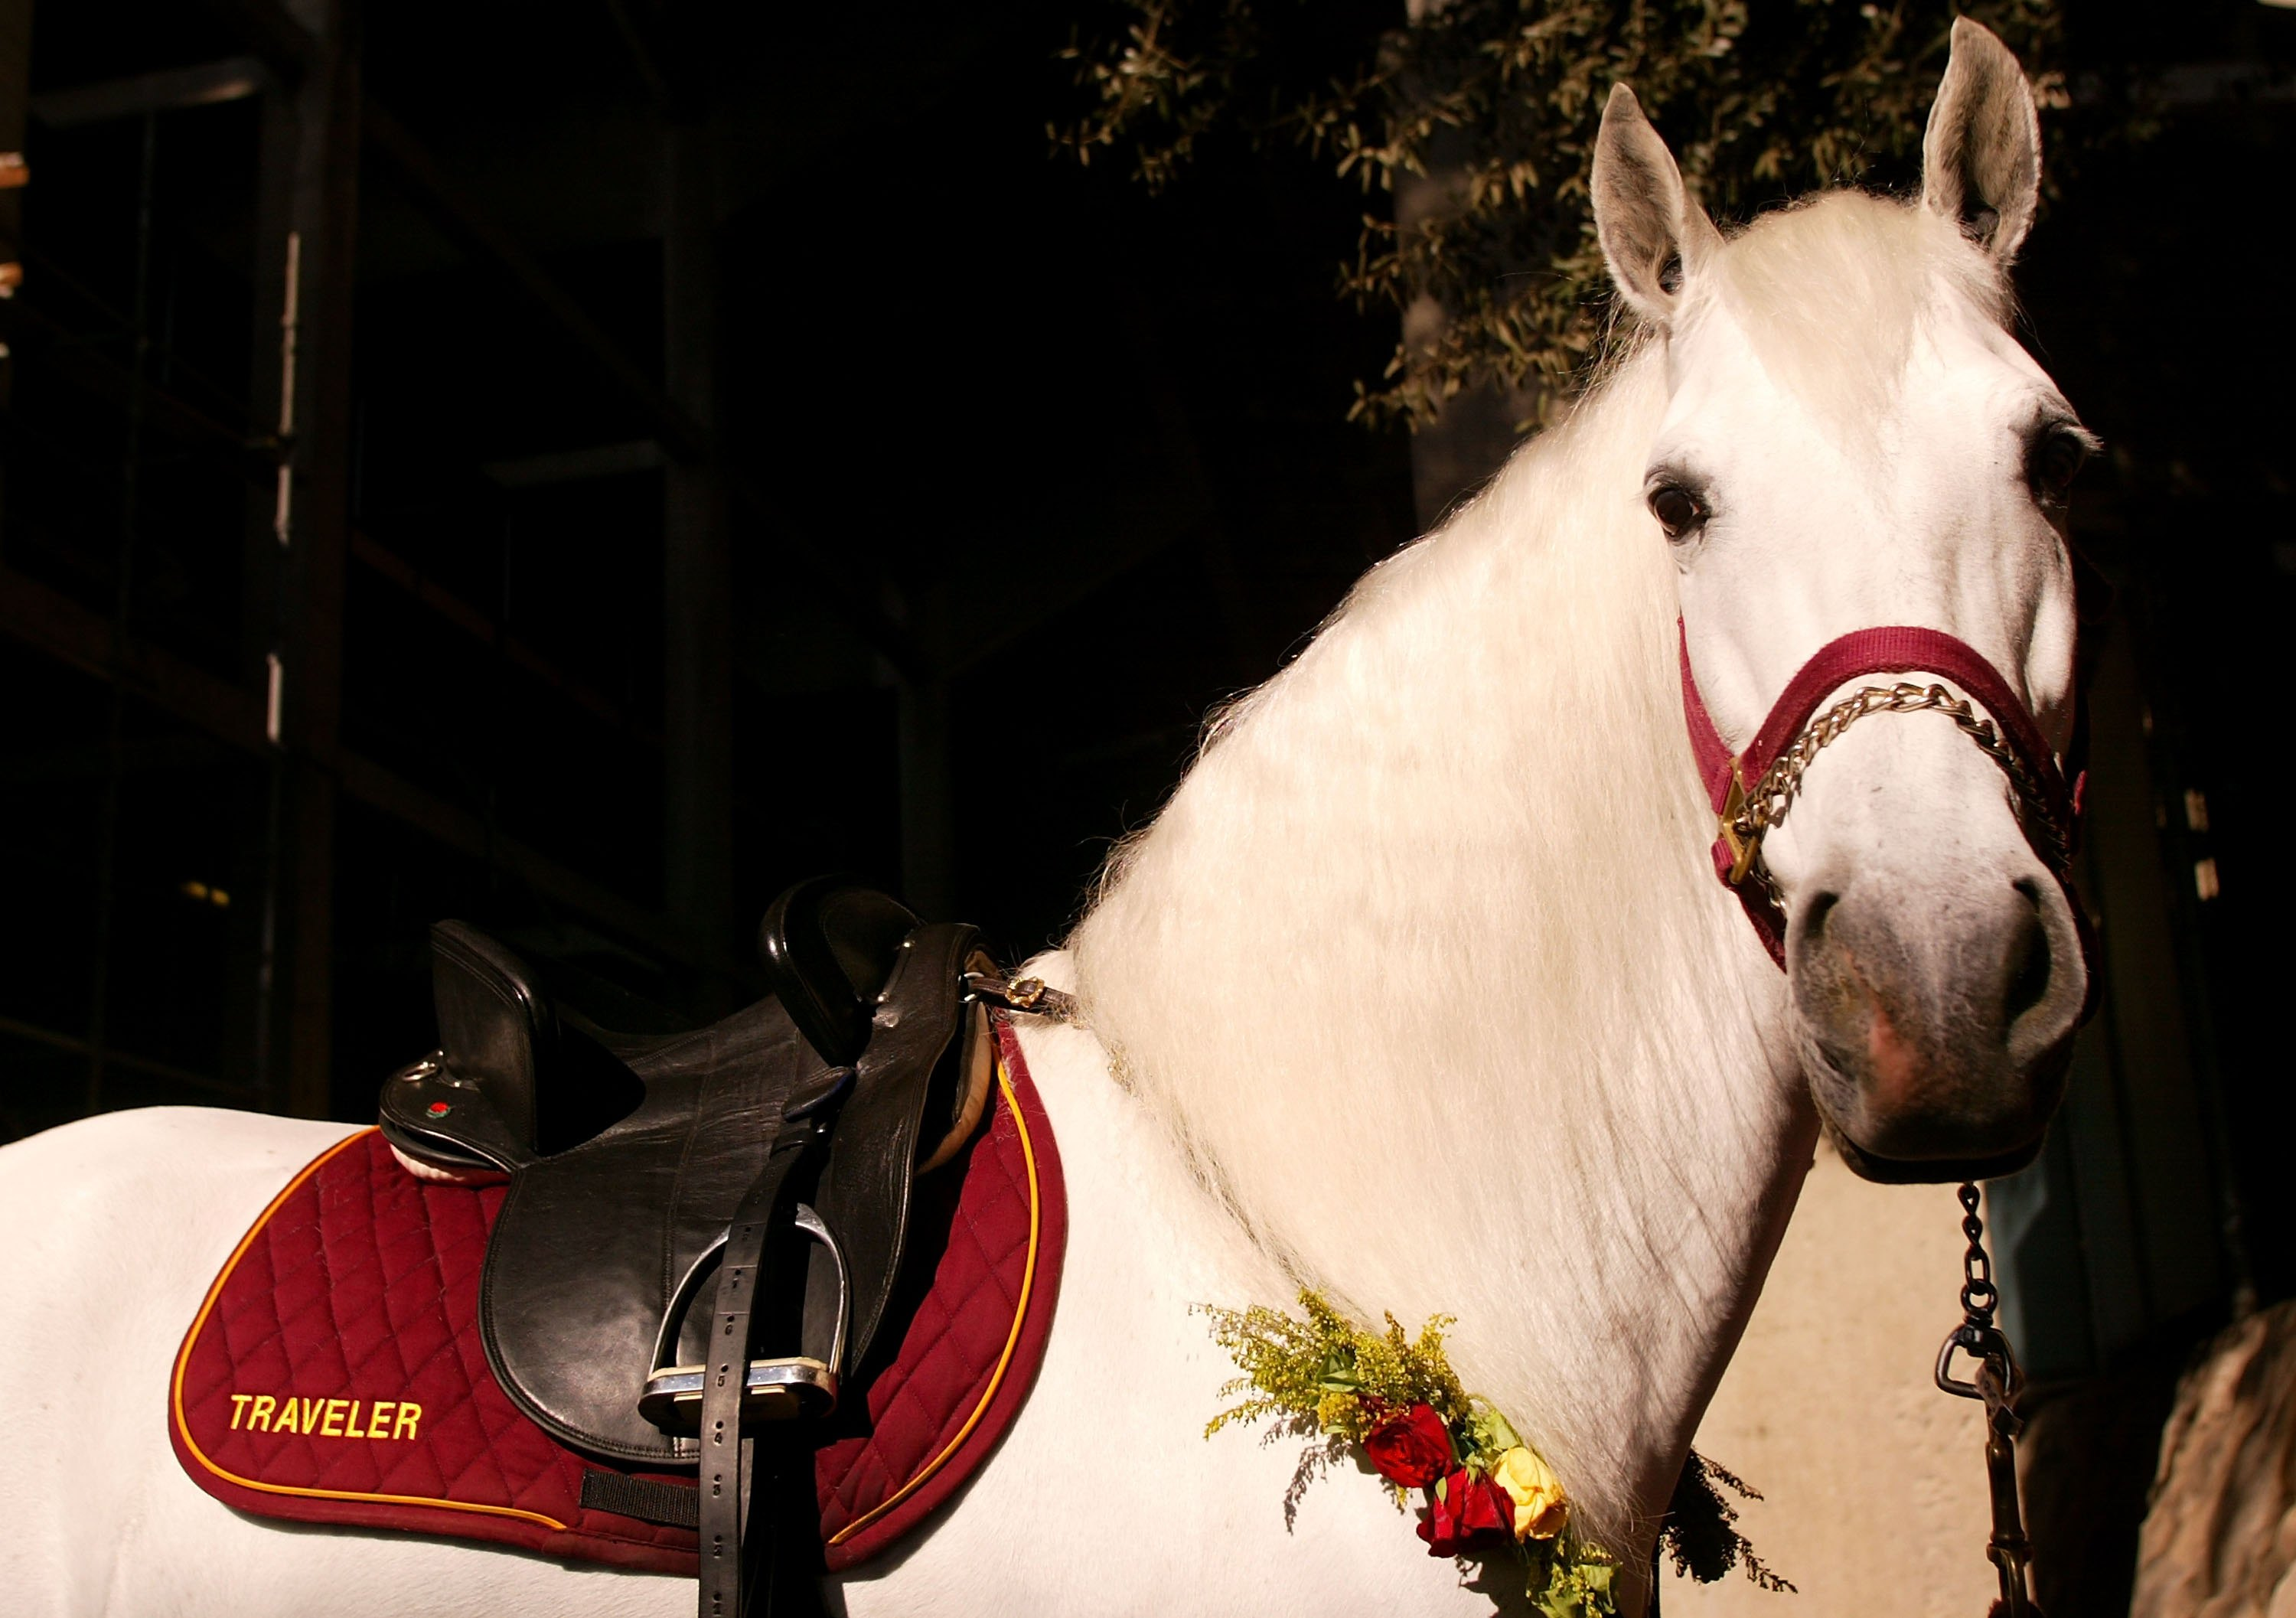 PASADENA, CA - JANUARY 01:  The USC Trojans mascot horse, Traveler looks on before the Rose Bowl game against the Michigan Wolverines on January 1, 2007 at the Rose Bowl in Pasadena, California. The Trojans defeated the Wolverines 32-18.  (Photo by Christ